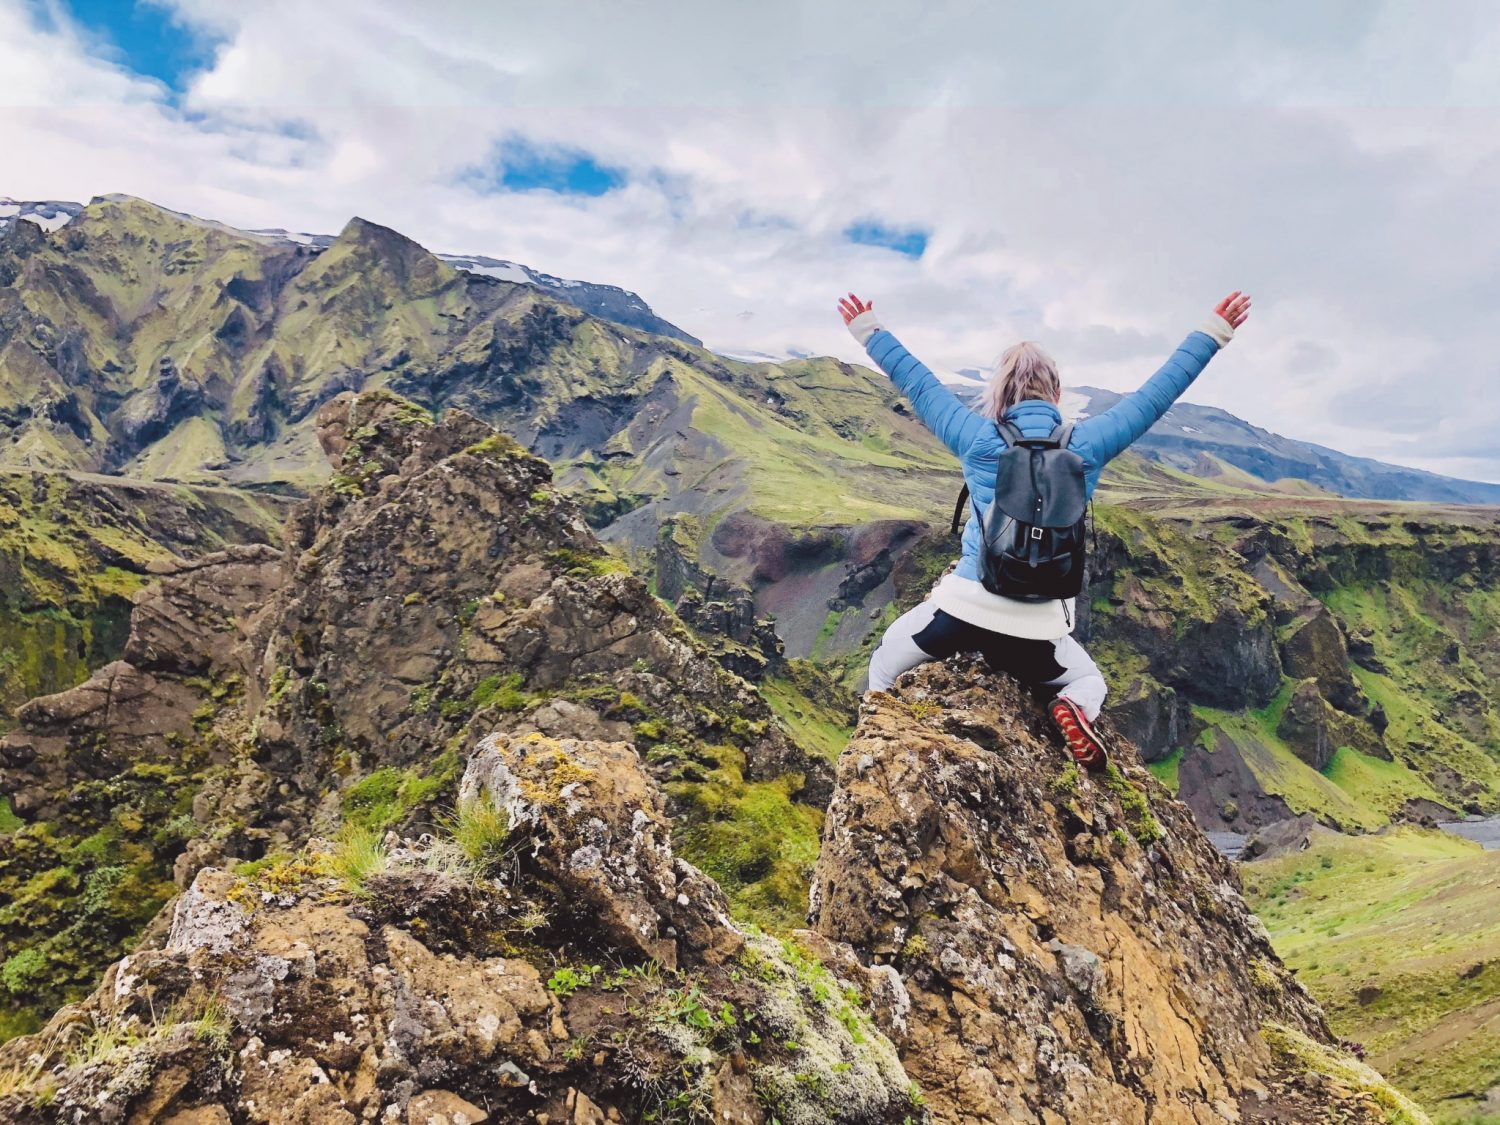 Here Are 11 Reasons Why Mountain Climbing Can Enrich Your Soul